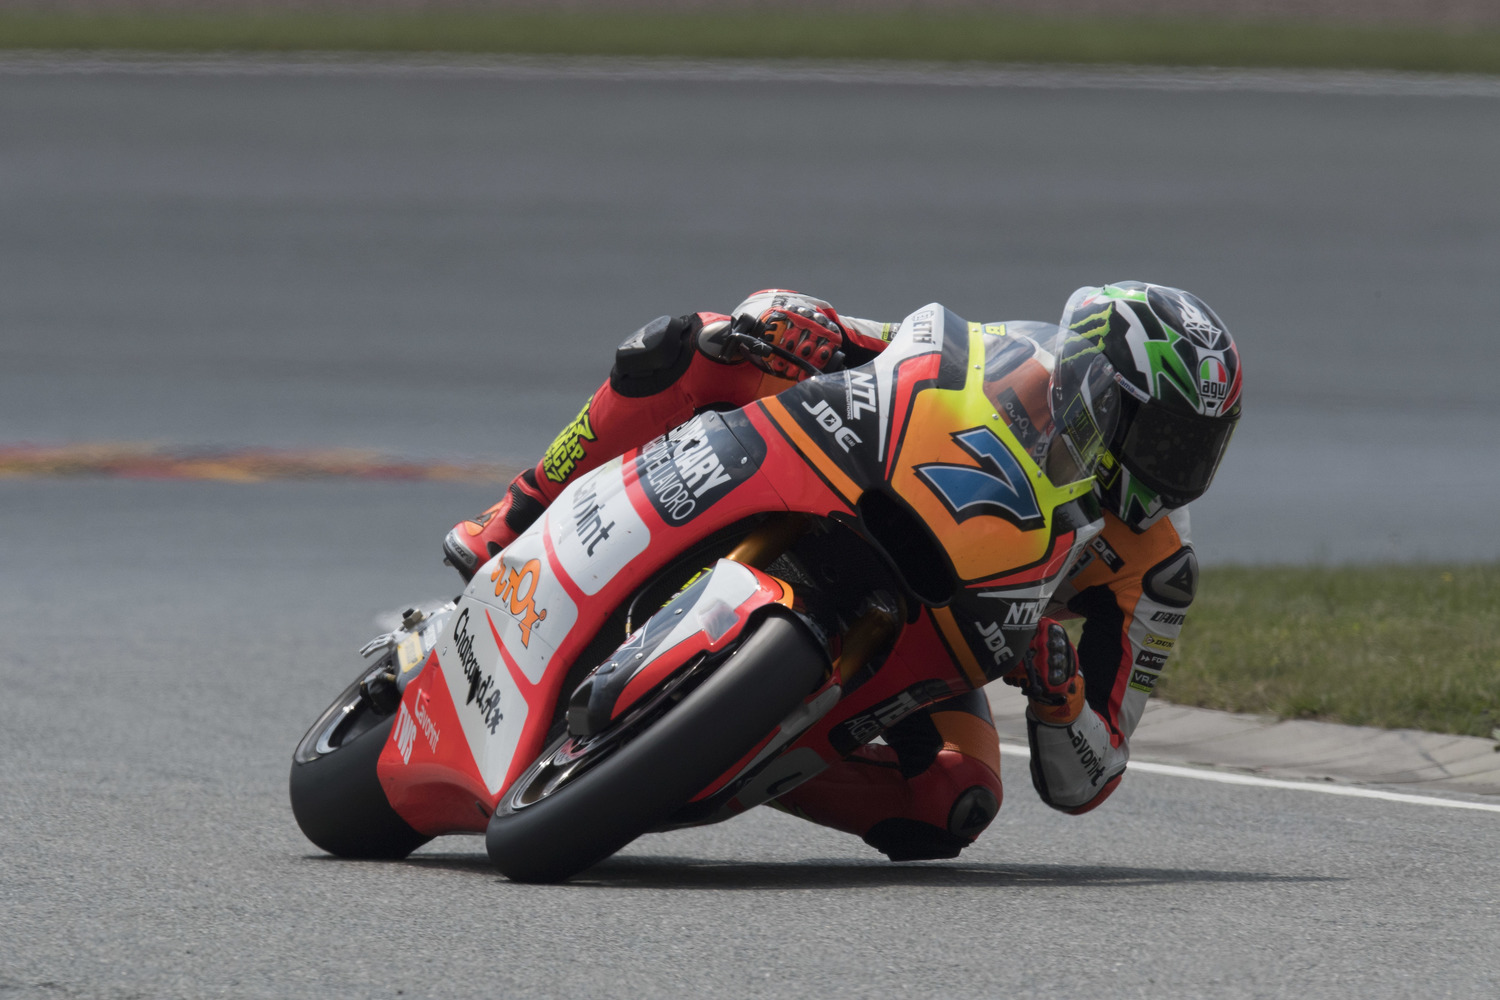 The sun brings positive qualifying for Baldassarri and Marini